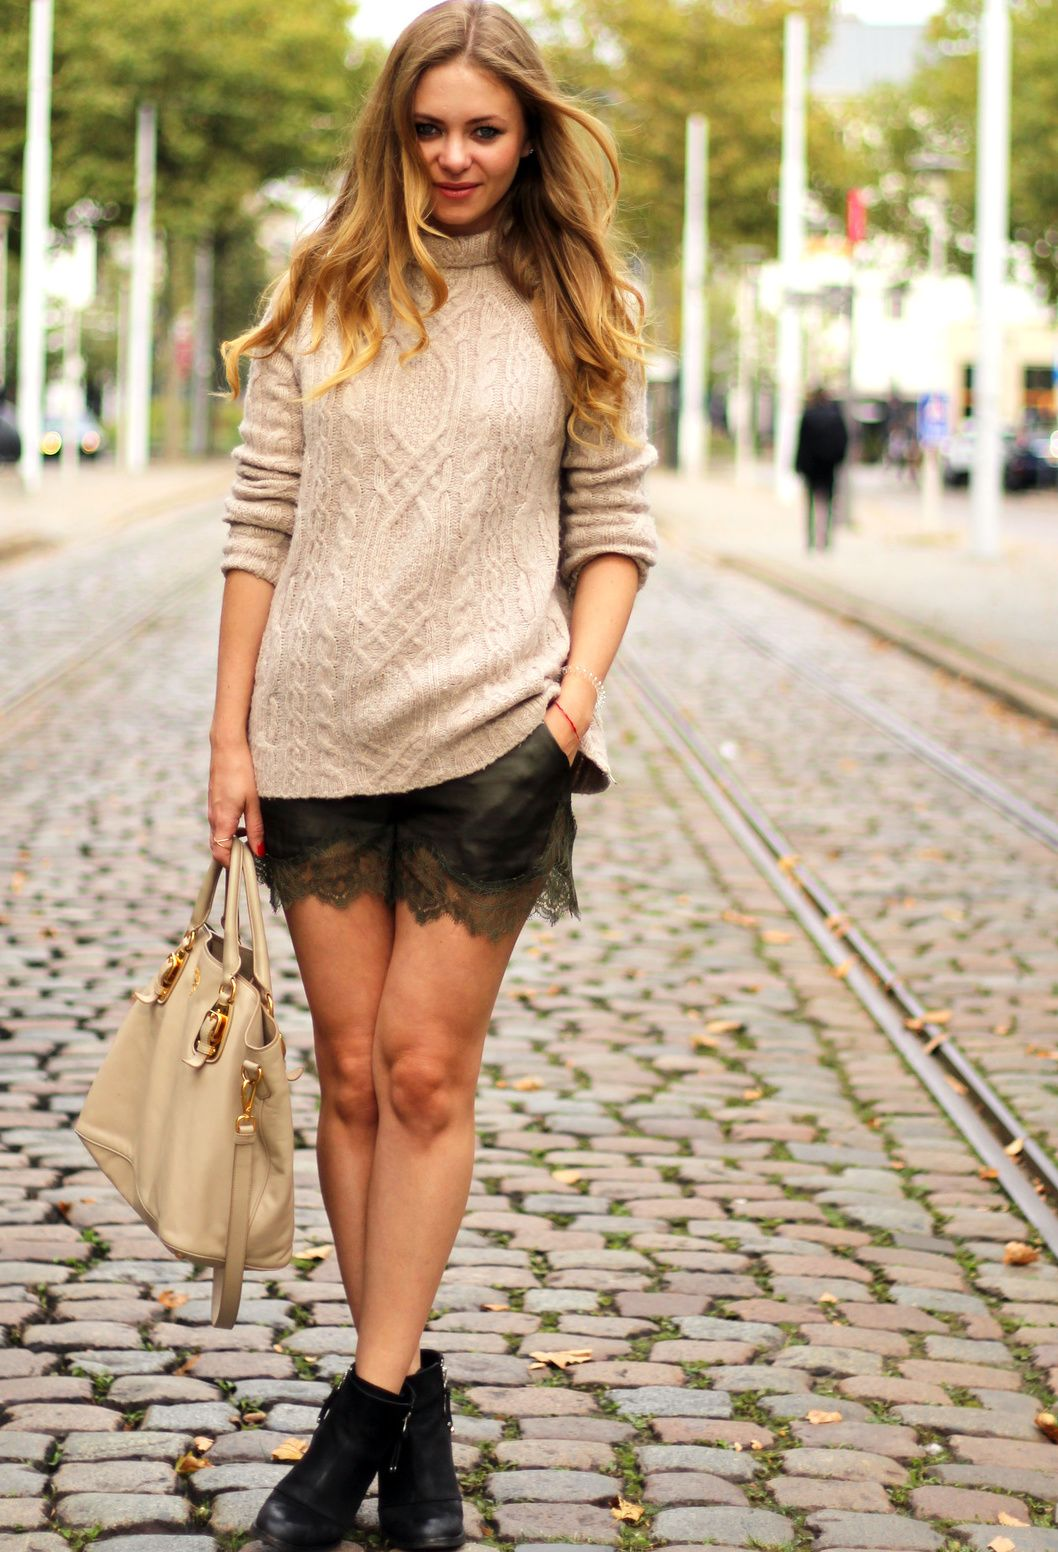 cream sweater and bag